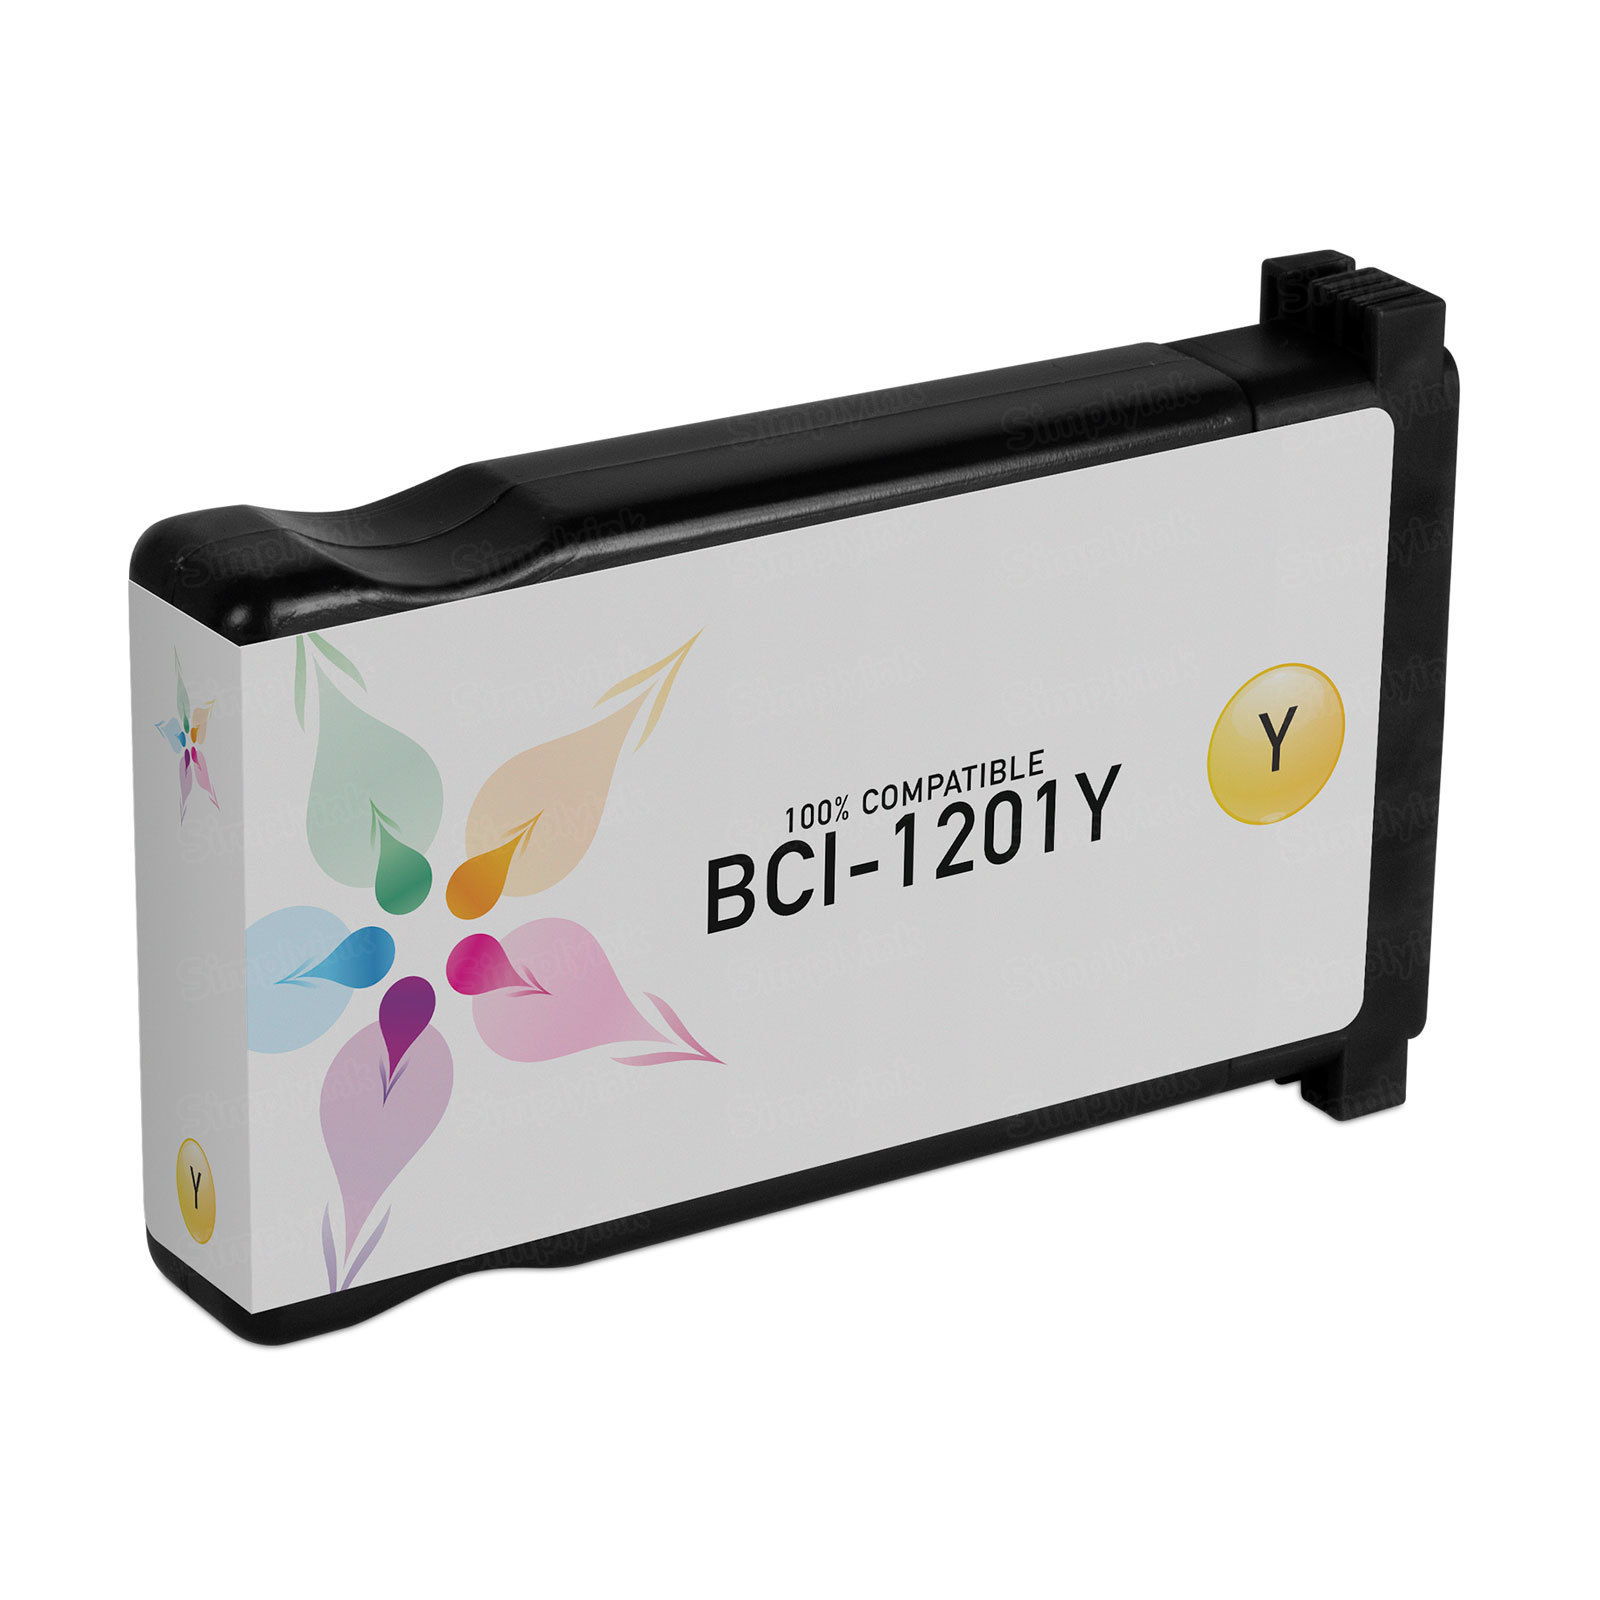 Canon Compatible BCI-1201Y Yellow Ink for N1000 & N2000